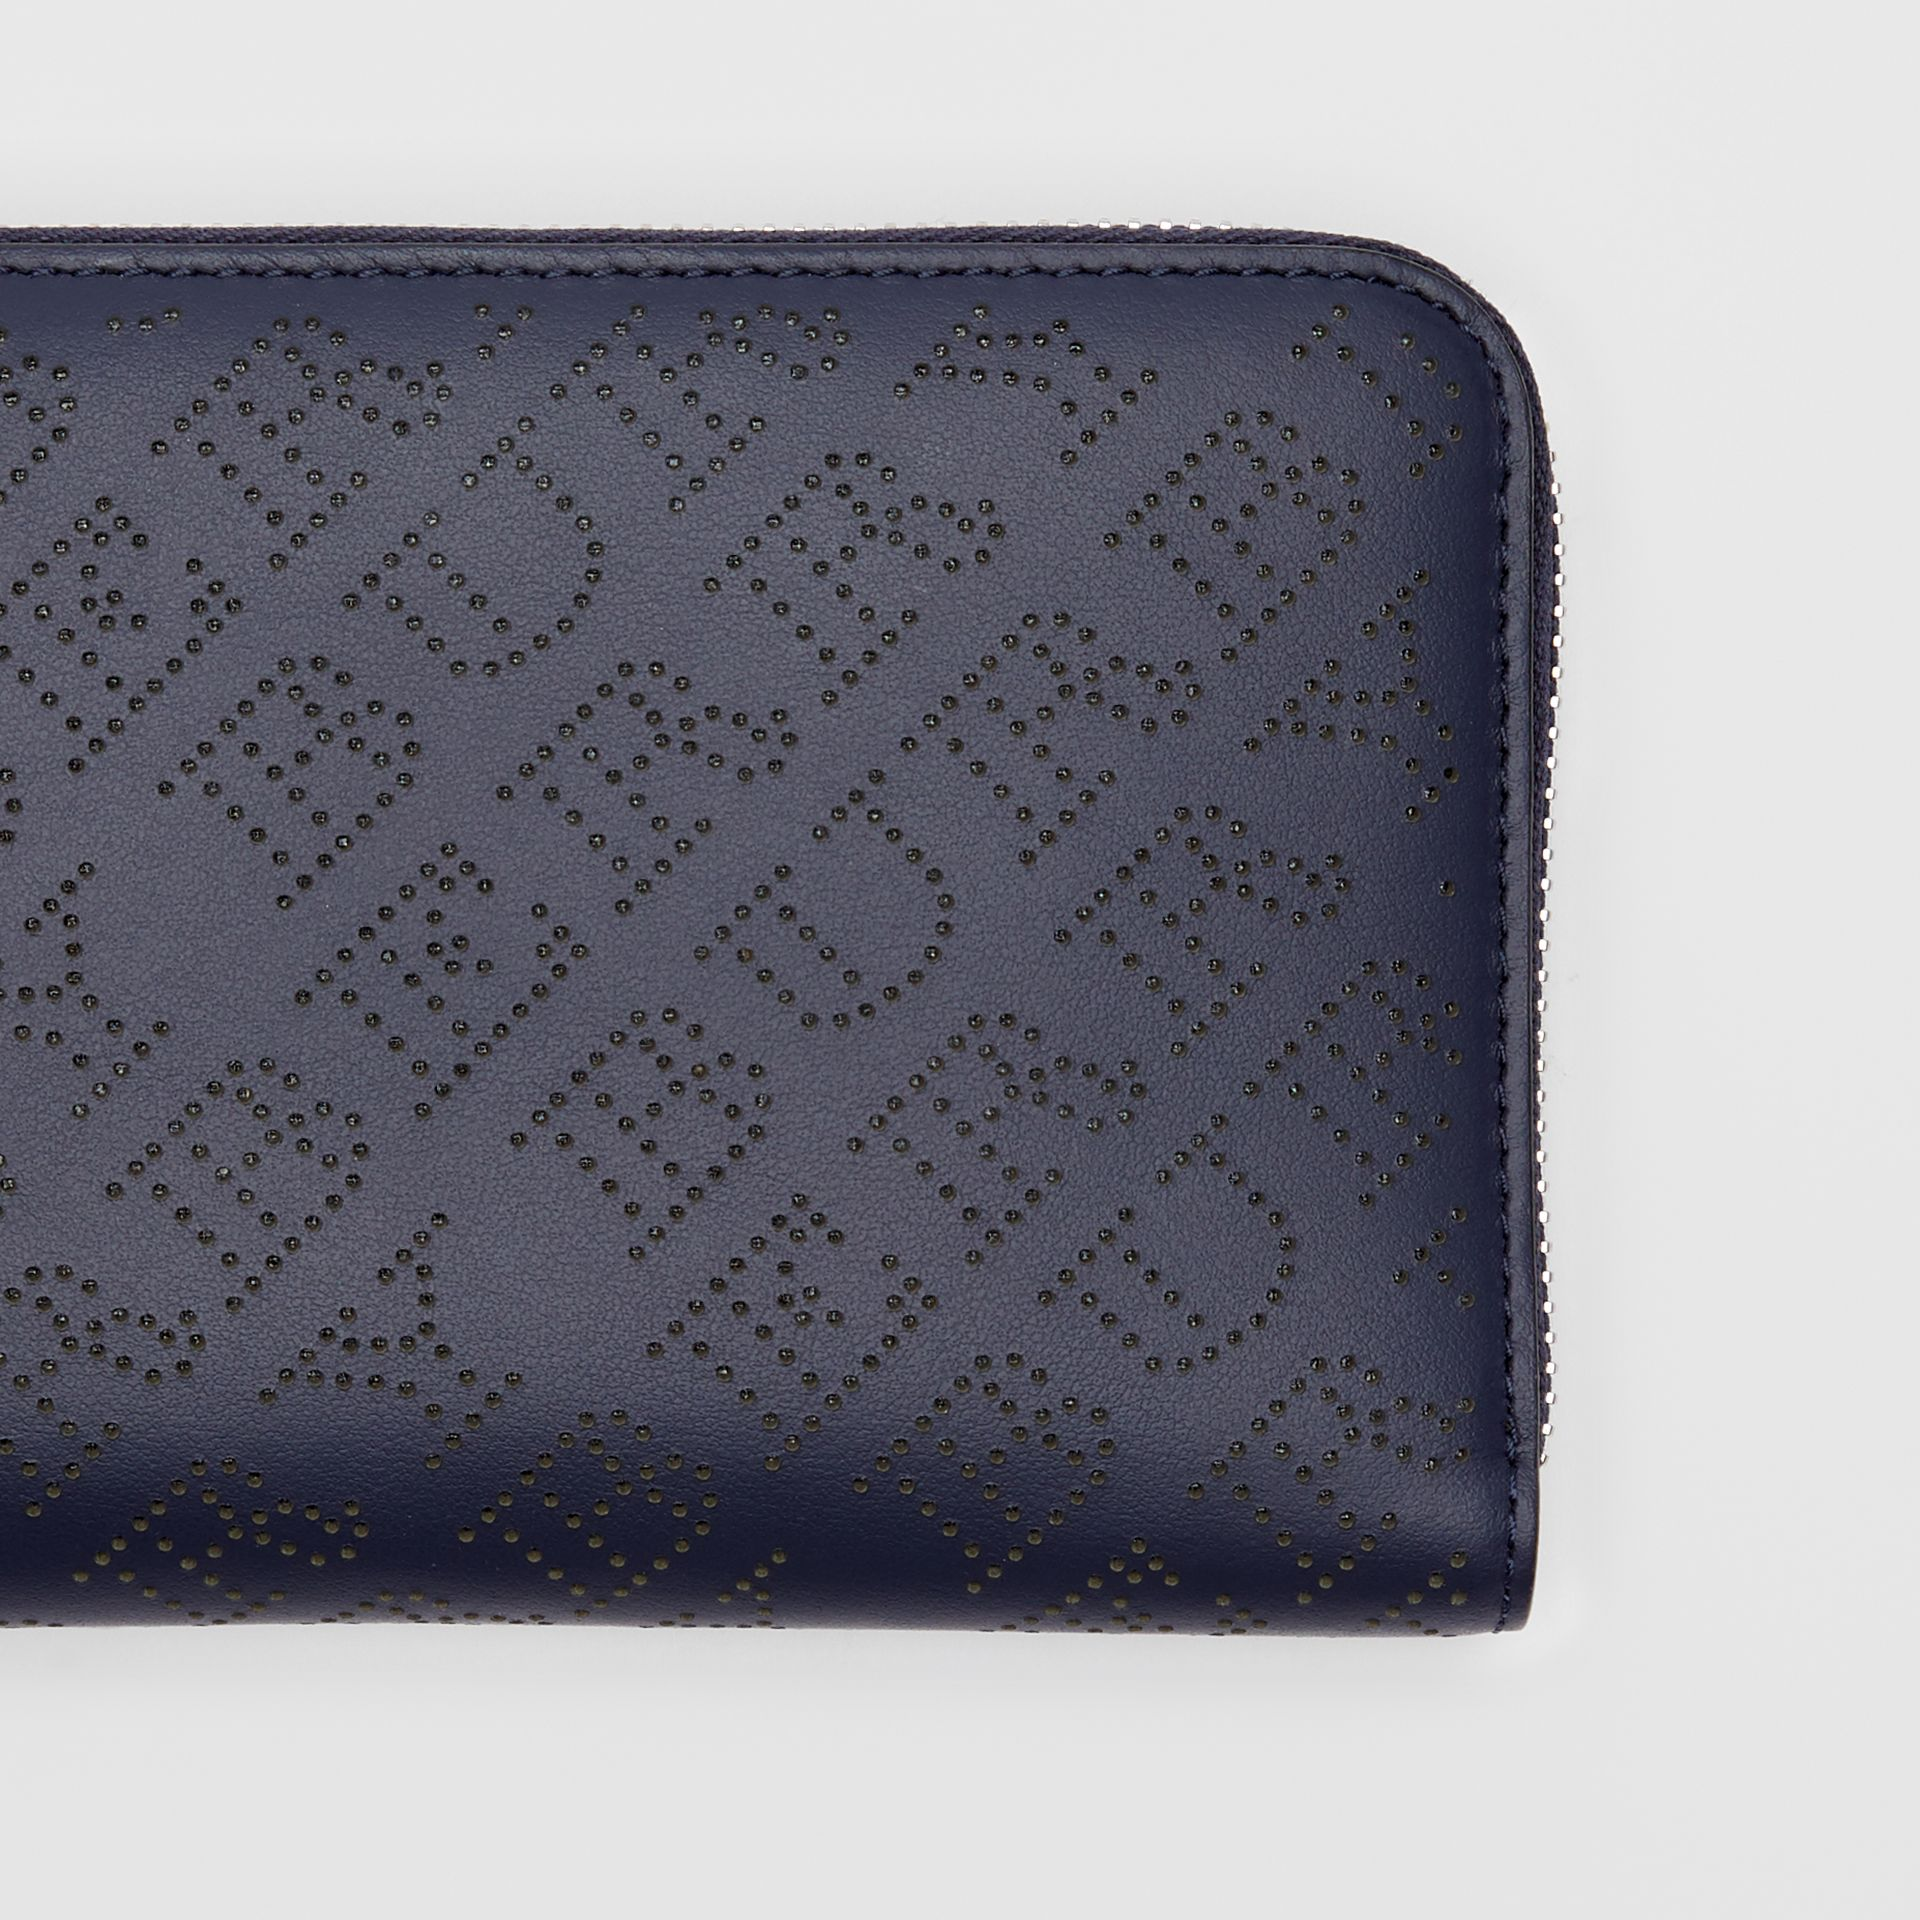 Perforated Leather Ziparound Wallet in Navy - Women | Burberry Australia - gallery image 1